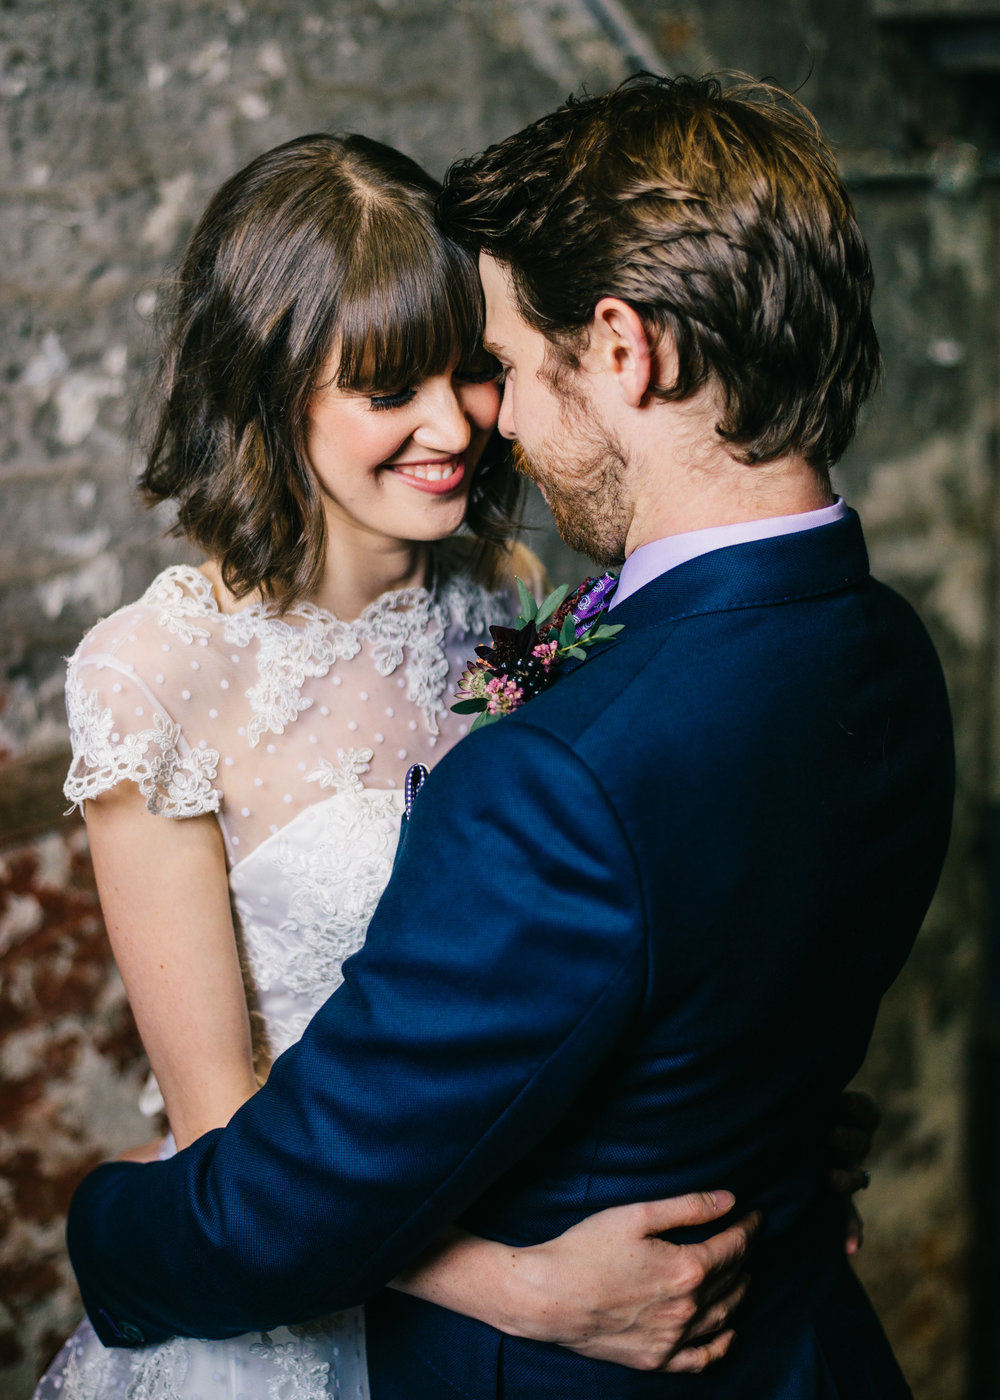 Holmes Mill, Clitheroe, Lancashire - Styled Wedding Shoot-40.jpg